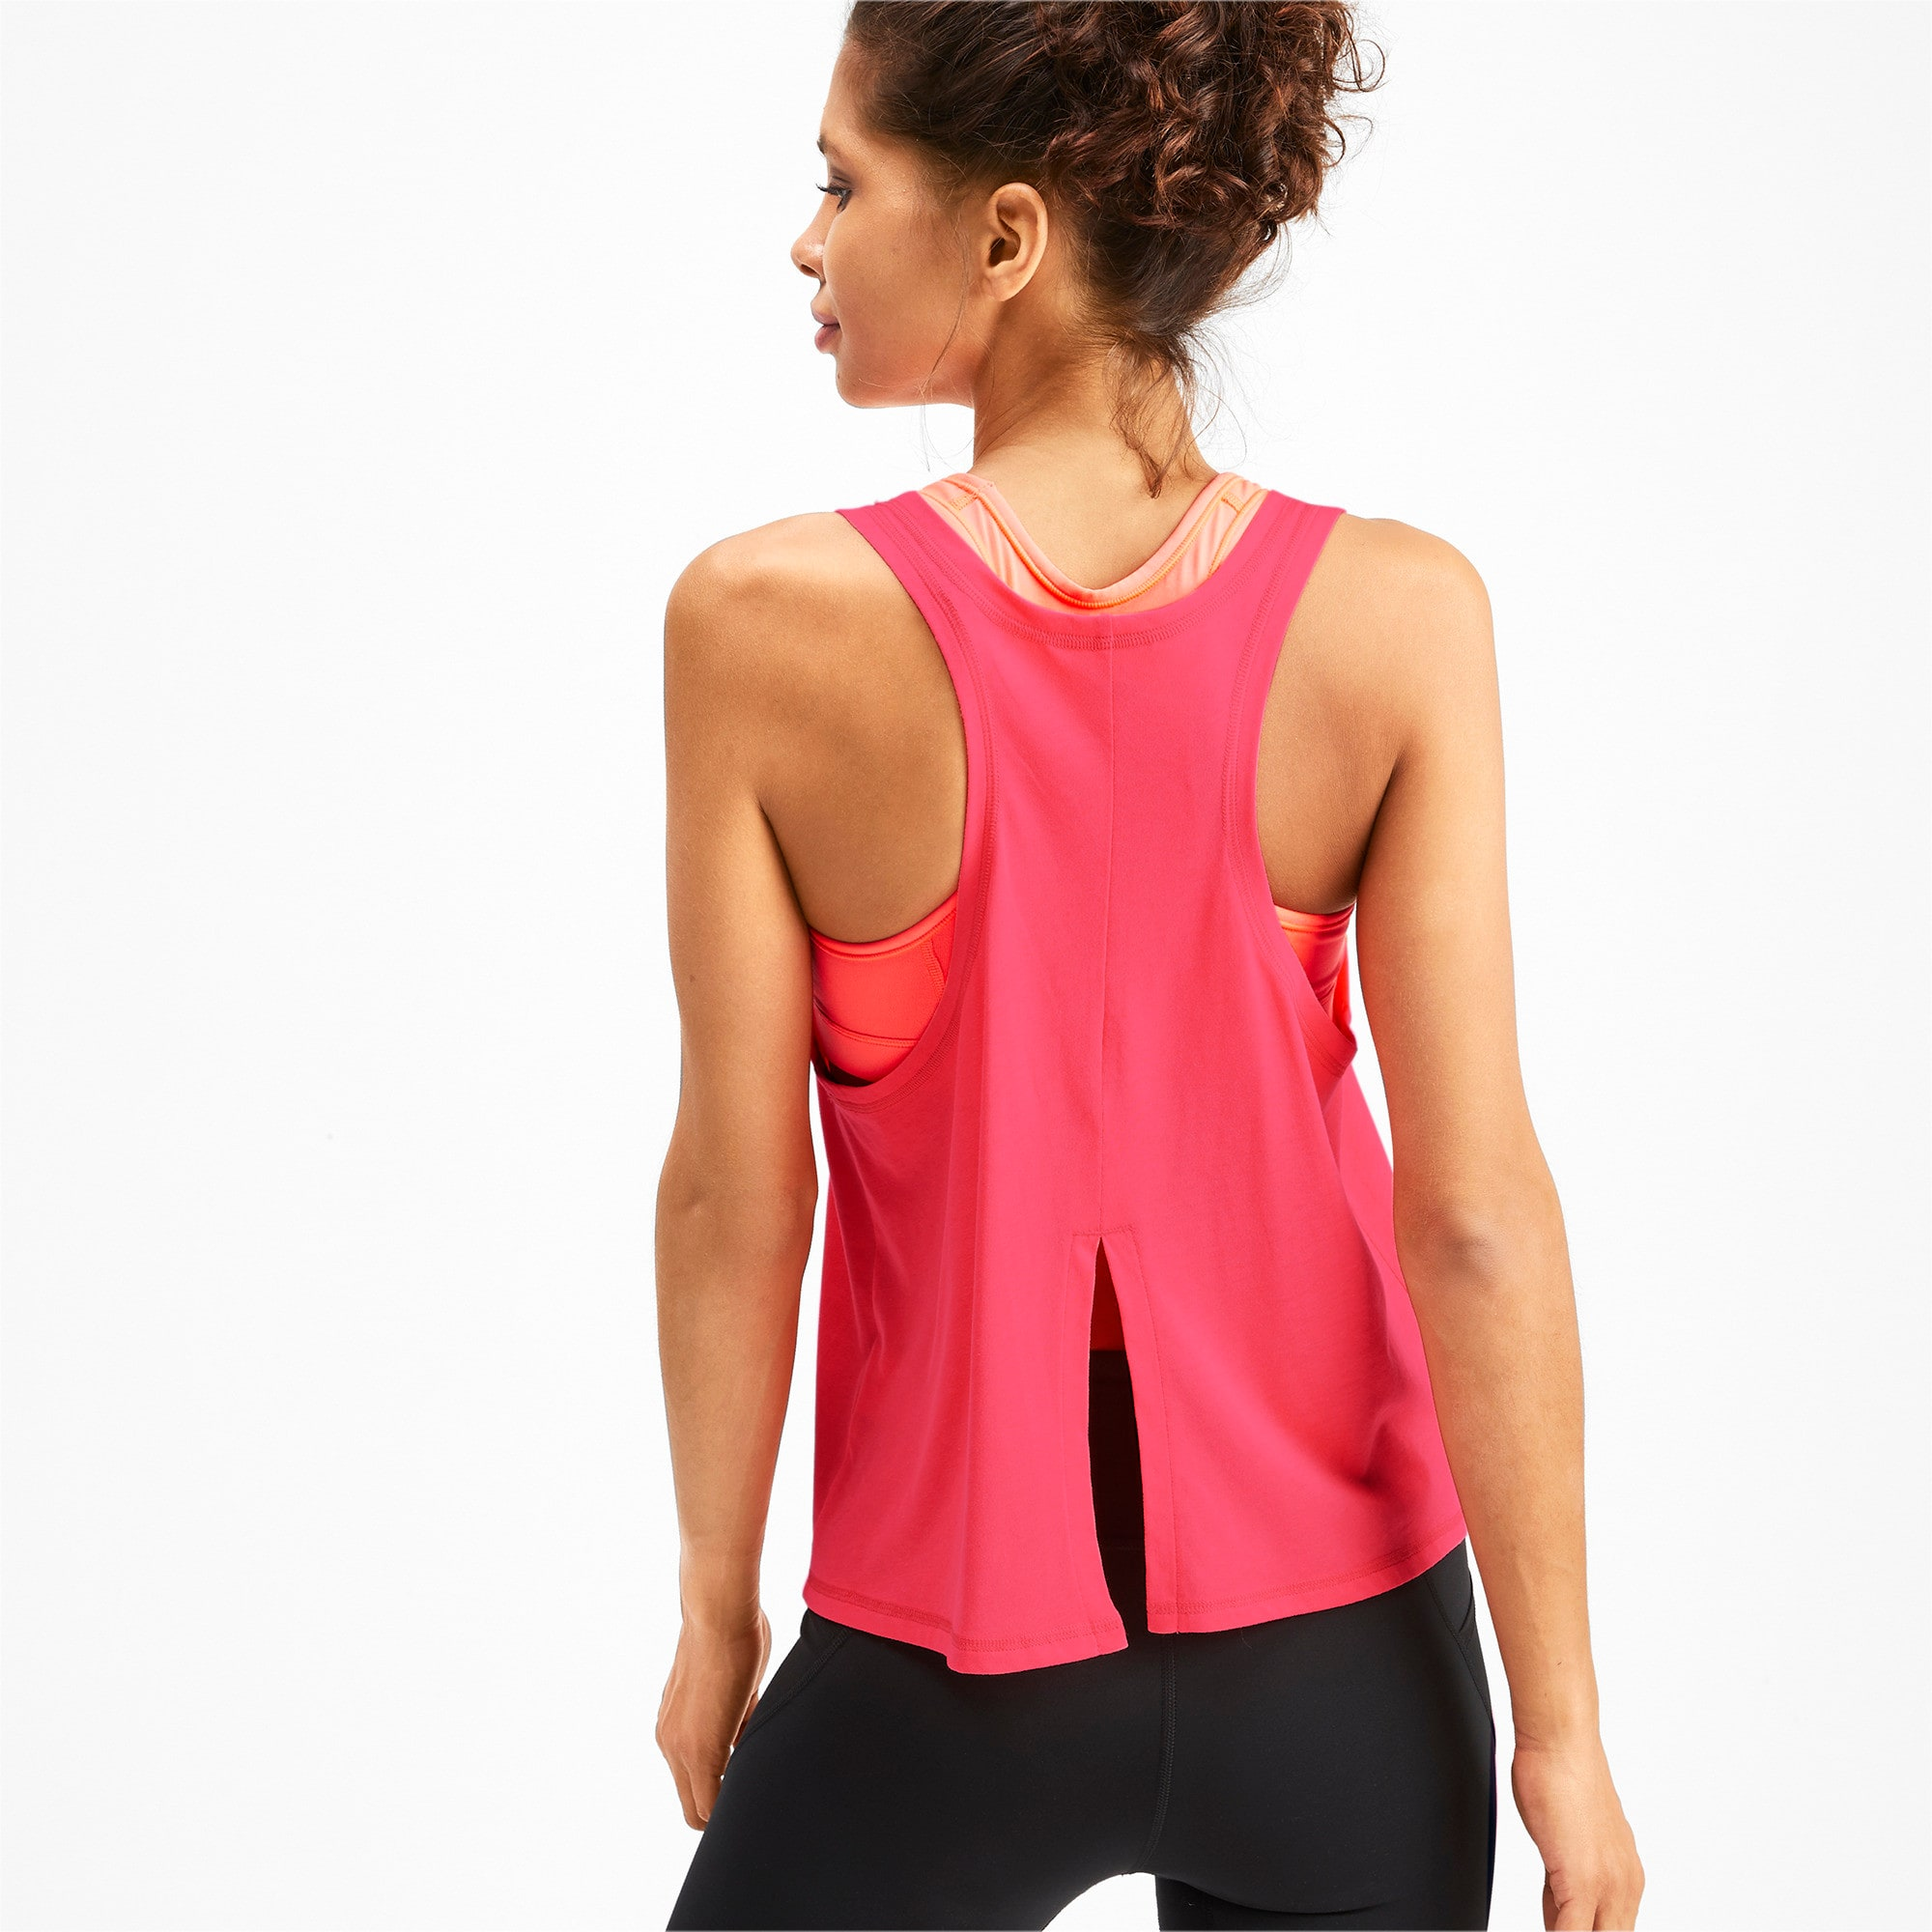 Miniatura 2 de Camiseta sin mangas HIT Feel It para mujer, Pink Alert, mediano